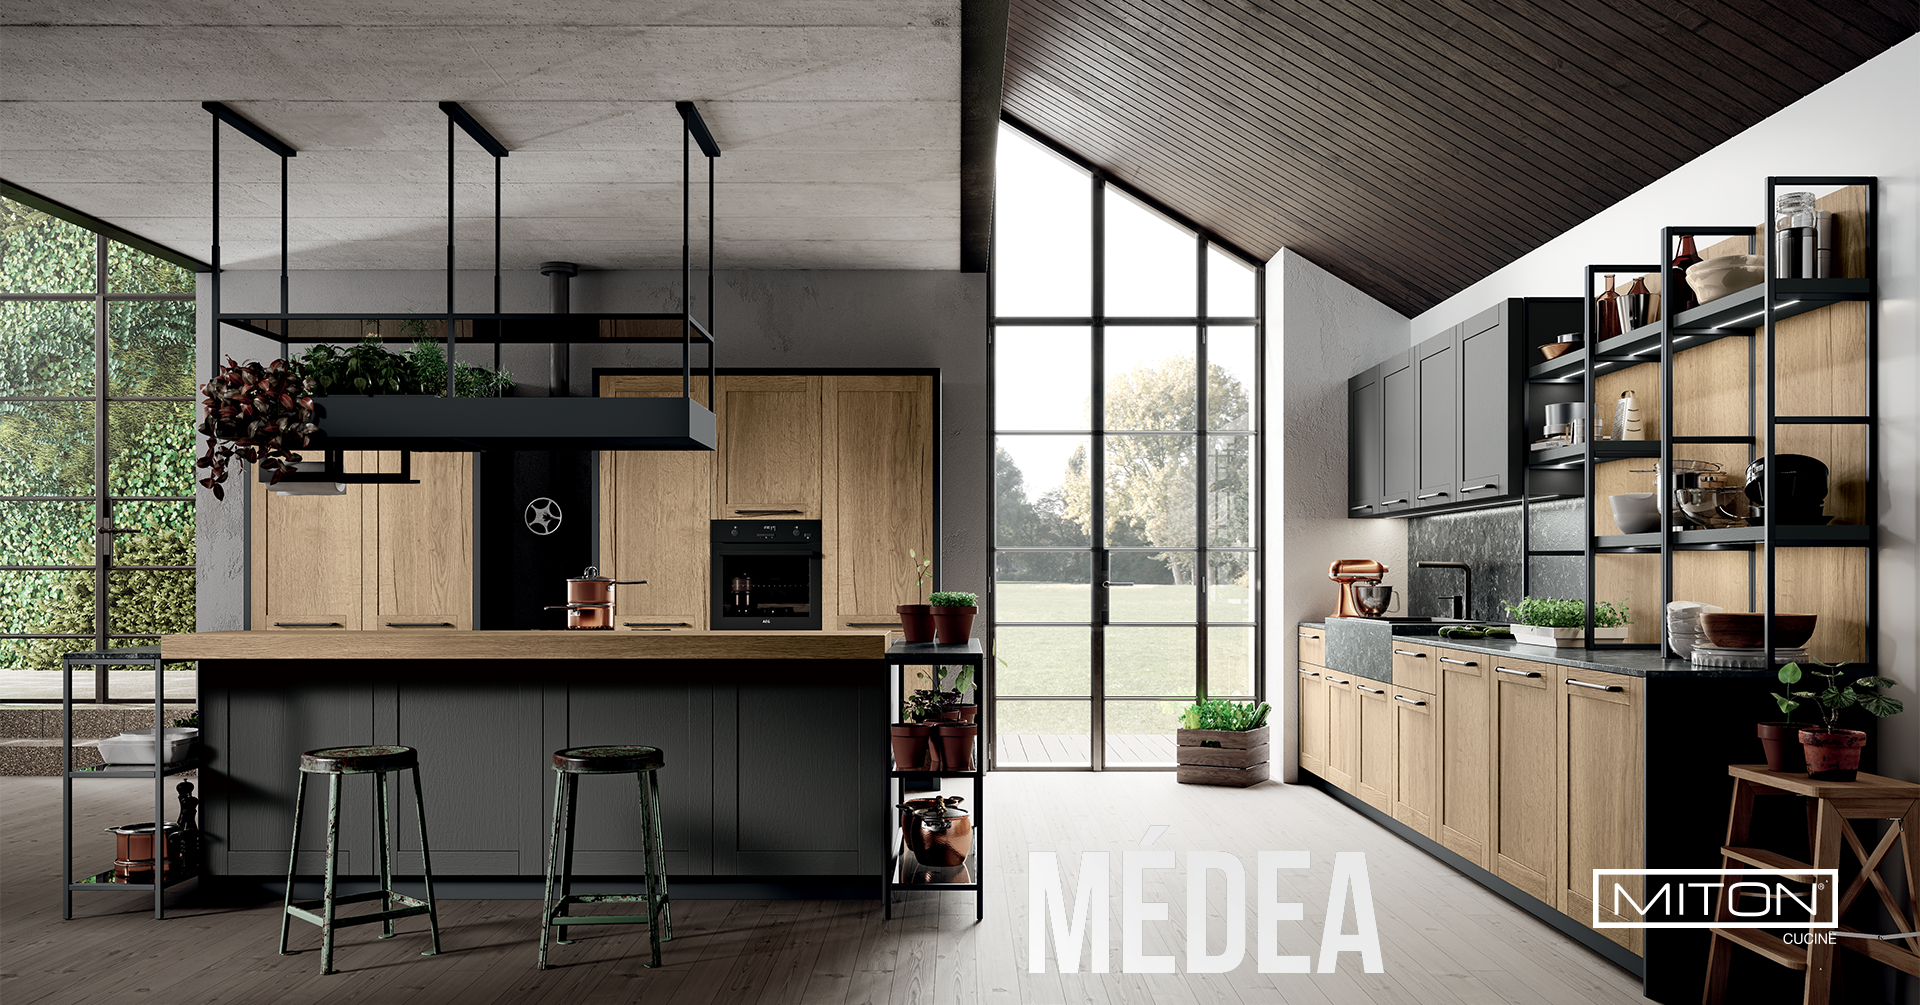 Medea Miton Cucine Made In